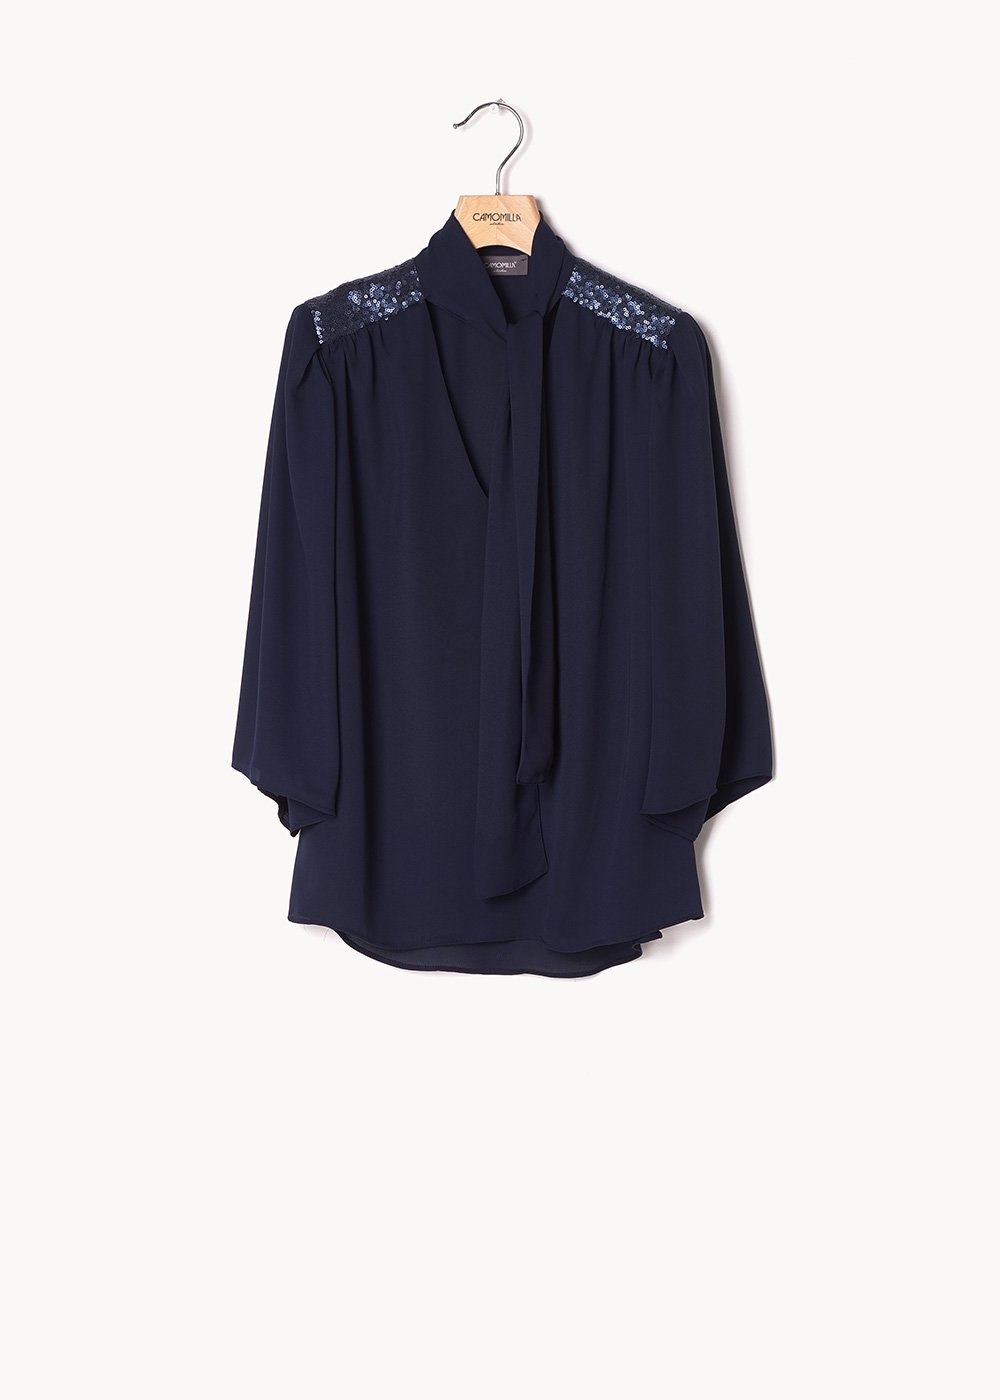 Christina blouse with sequins inserts - Medium Blue - Woman